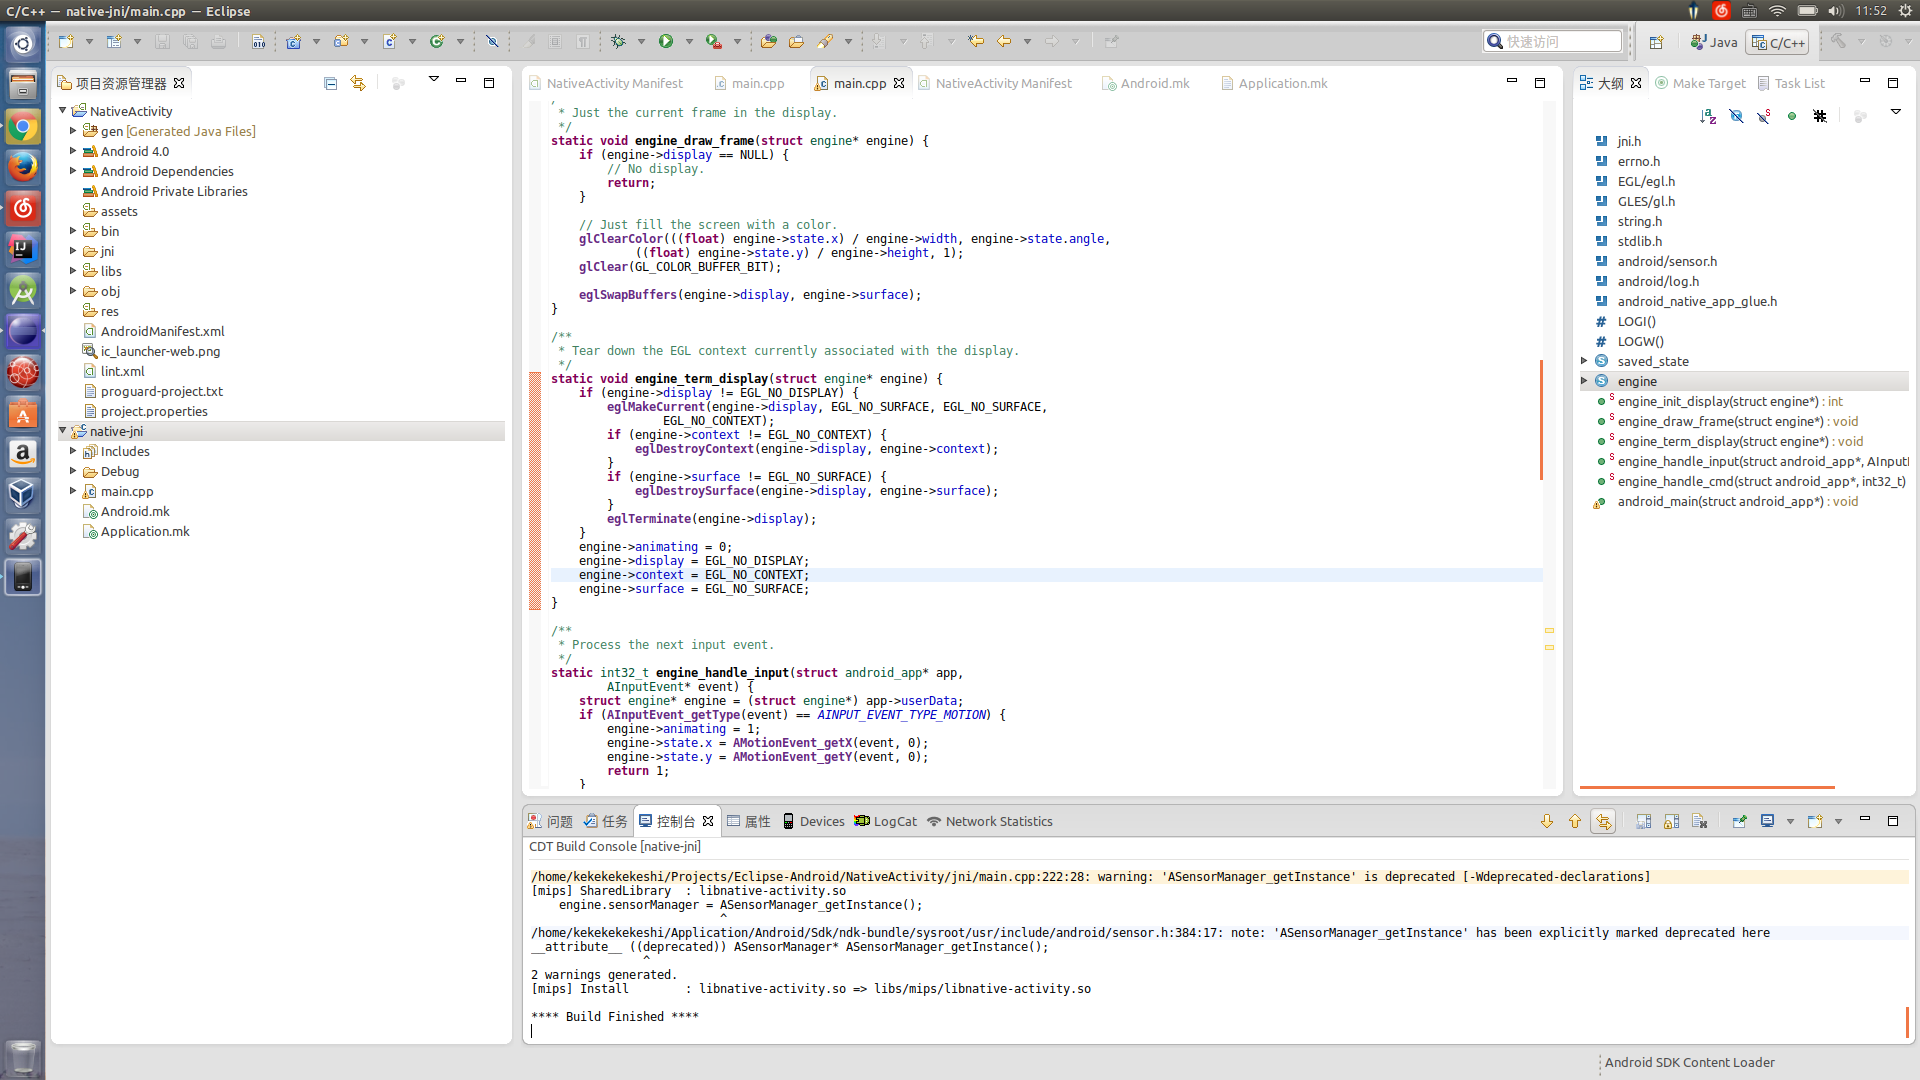 Android Eclipse+ADT+SDK+NDK+OpenGL for Android Pure C/C++